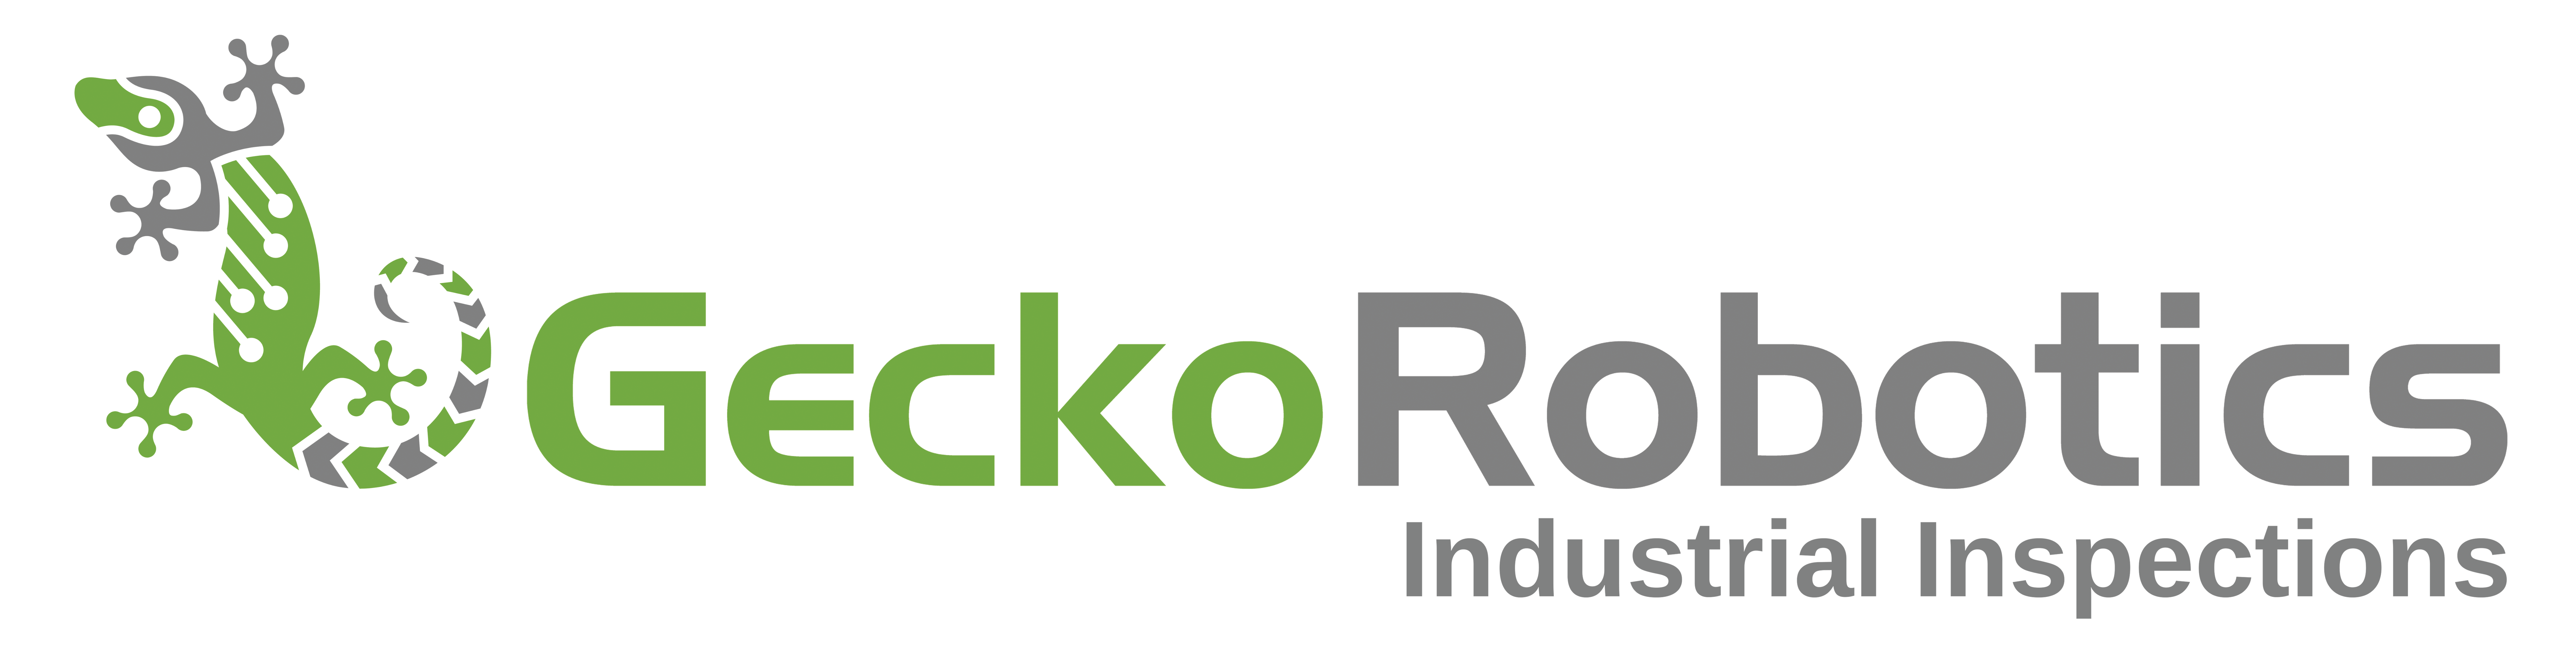 Gecko Robotics Industrial Inspections In Pittsburgh Pa